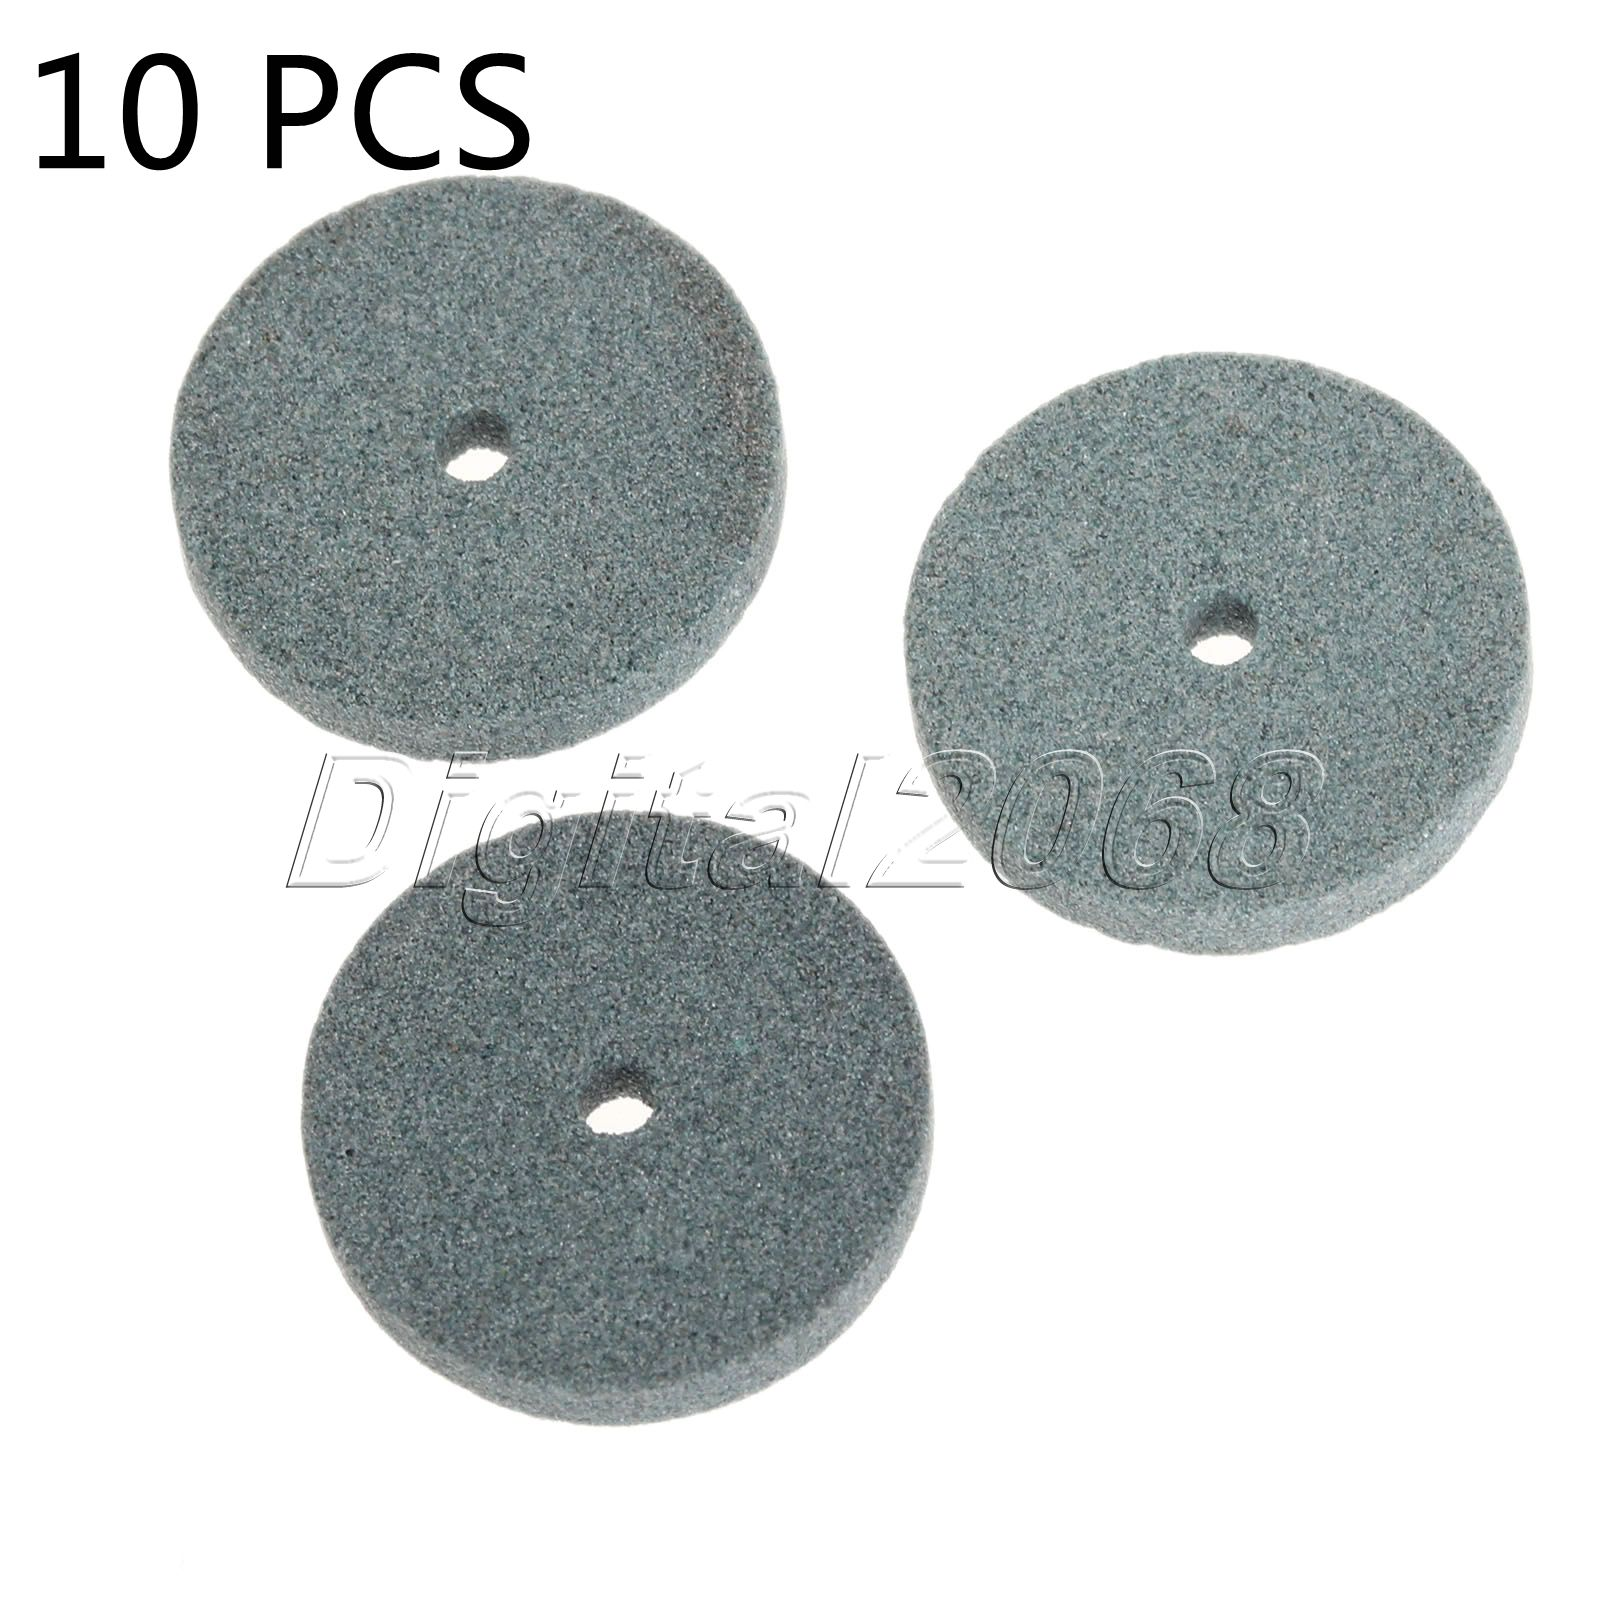 Cool Us 2 18 20 Off 10Pcs Mini Green Grinding Wheel Polishing Mounted Stone Abrasive Tools For Bench Grinder Dremel Rotary Tool Accessory Dia 20Mm In Andrewgaddart Wooden Chair Designs For Living Room Andrewgaddartcom